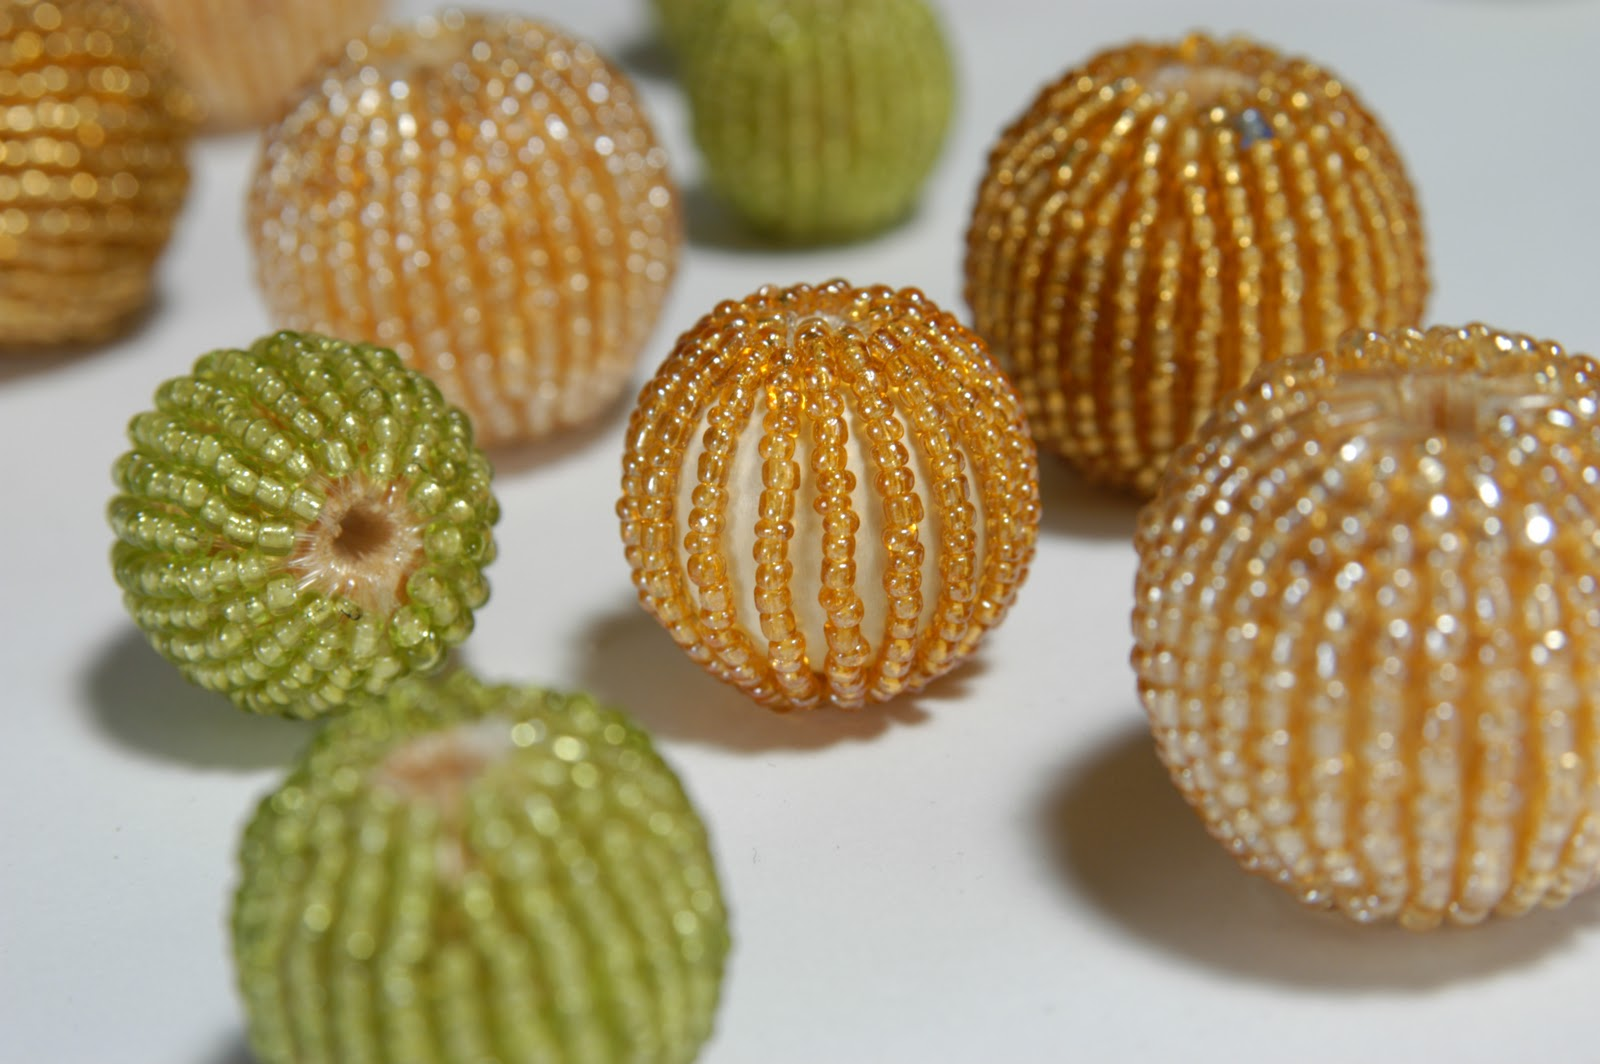 beads are threaded around a larger wooden bead to create beaded beads